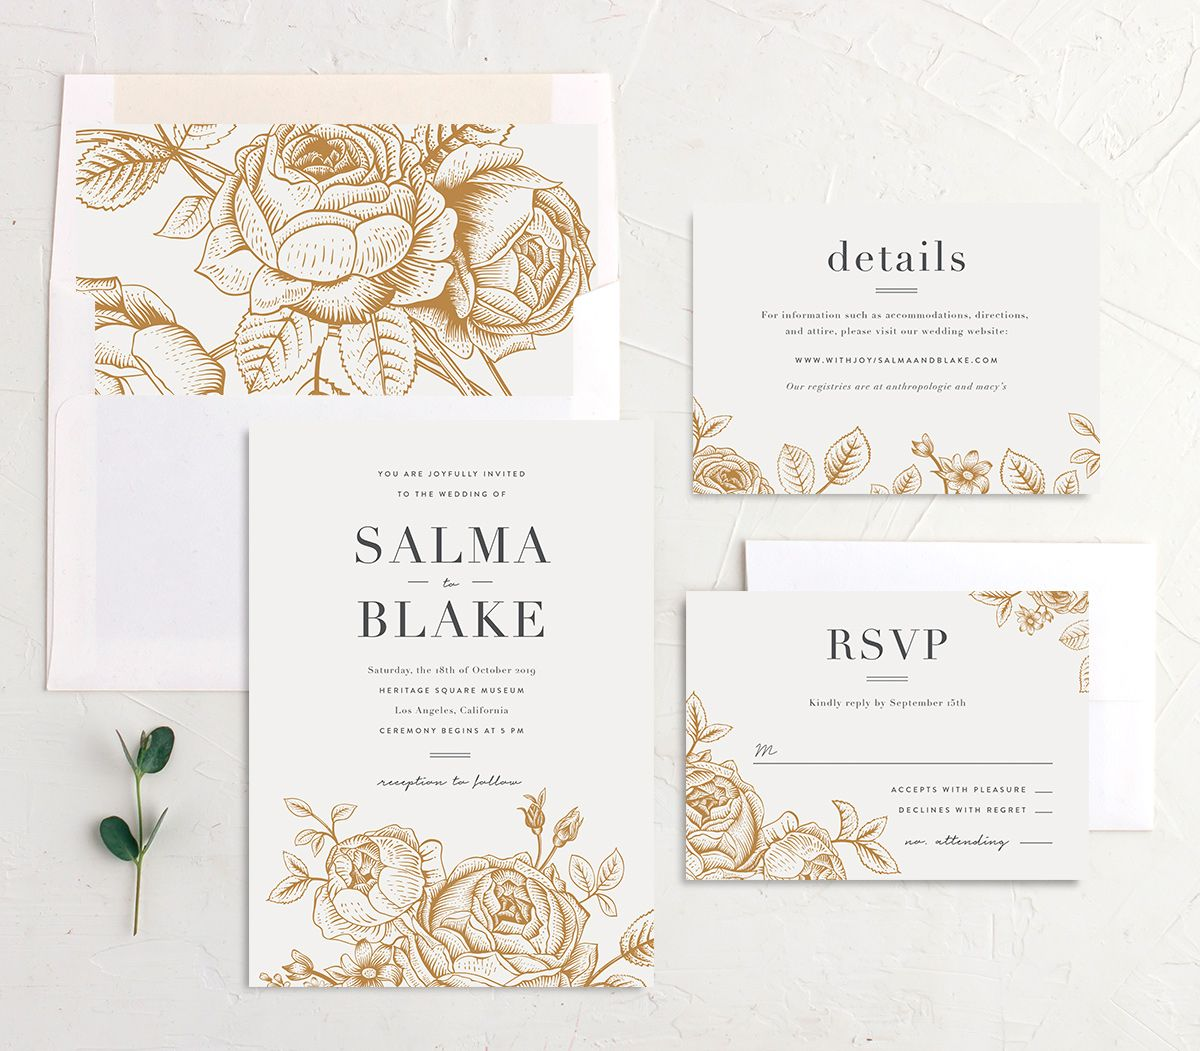 Etched botanical wedding invitation stationery suite